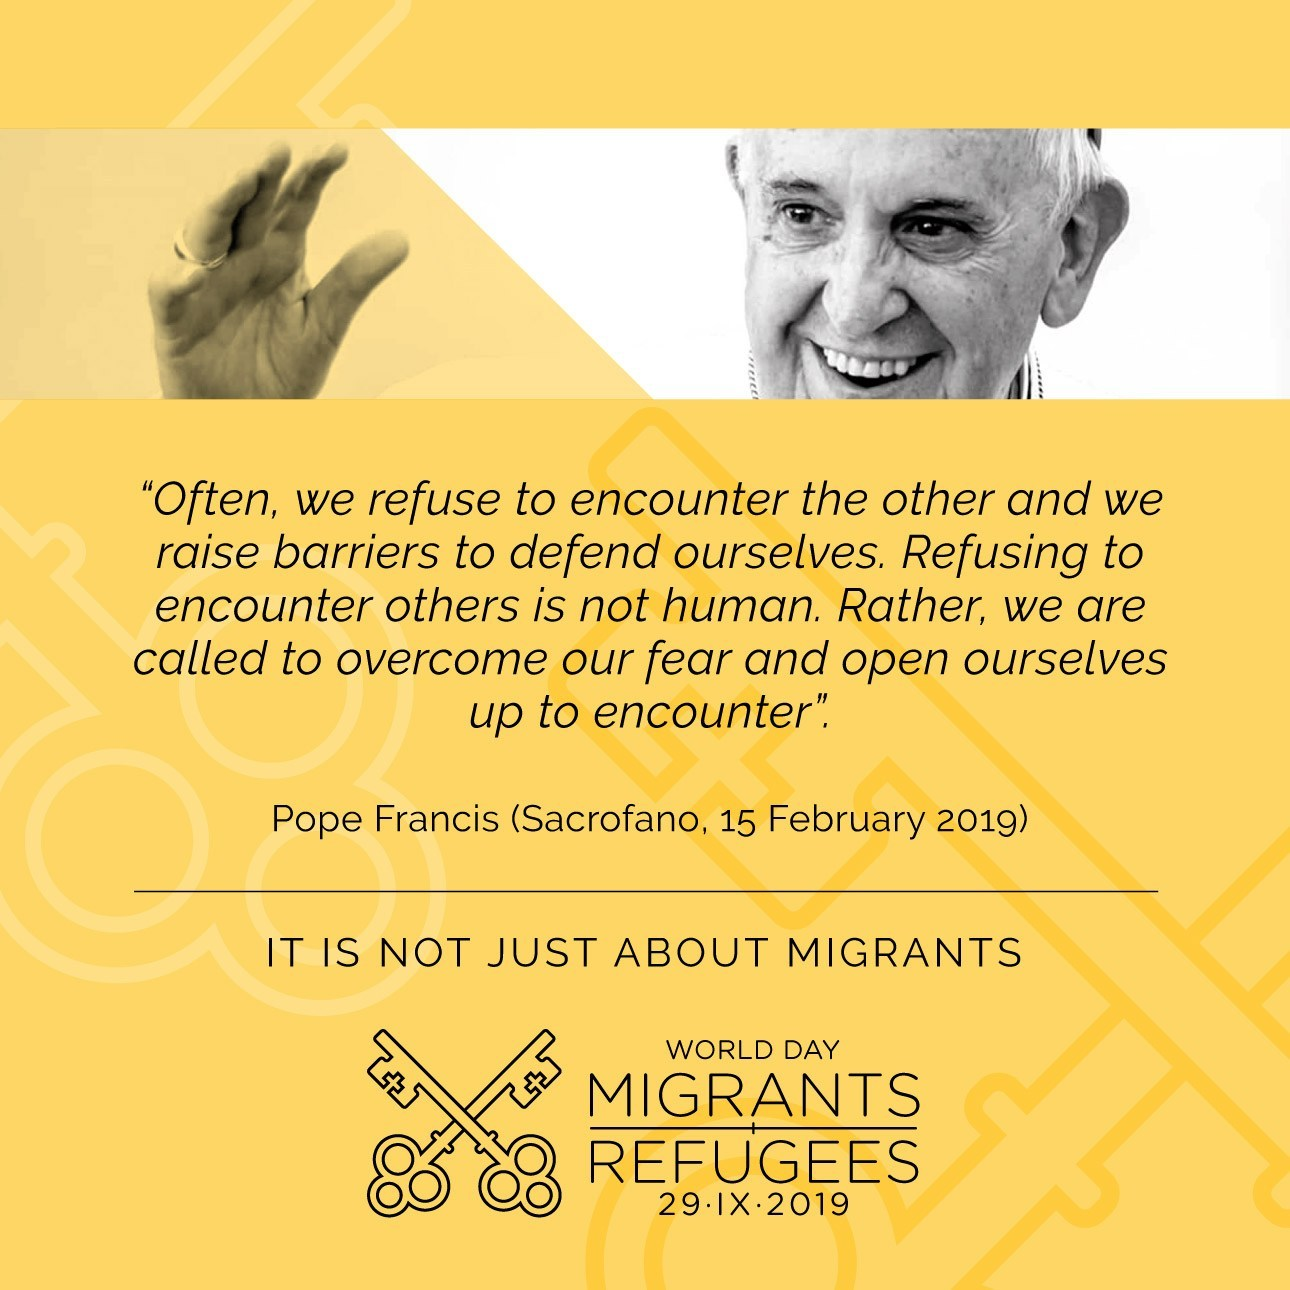 Pope Frfancis quote on migrants and refugees